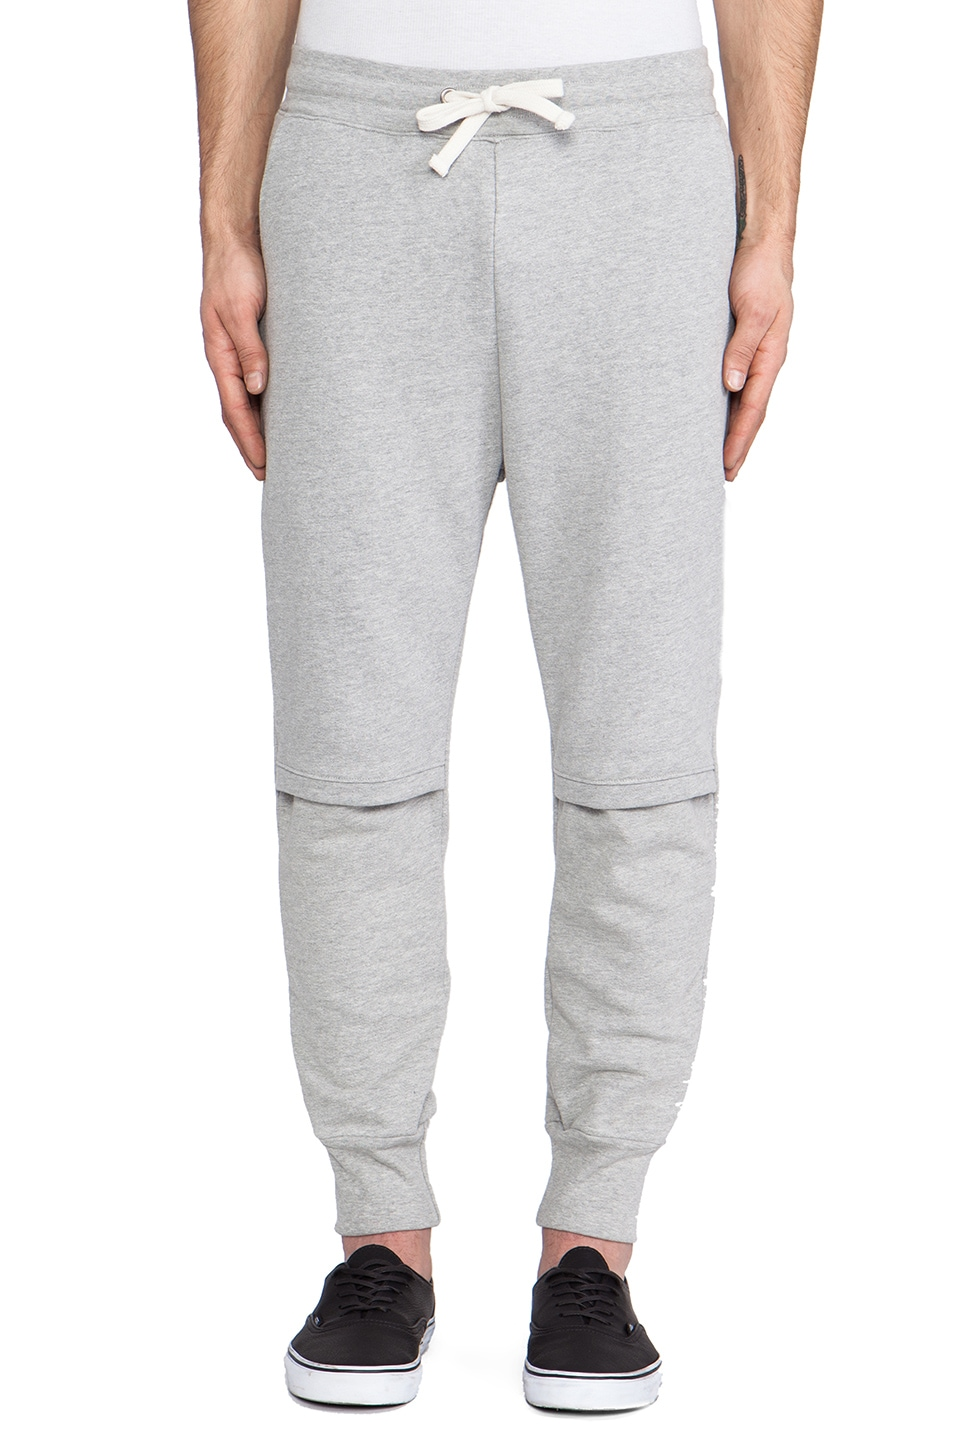 Drifter Cade Sweatpant in Heather Grey